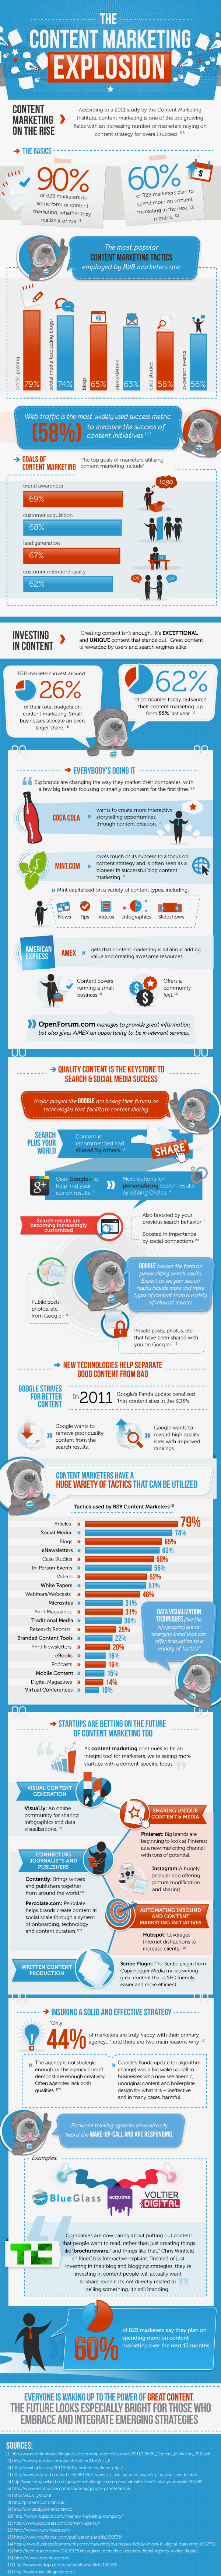 The-Content-Marketing-Explosion-infographic